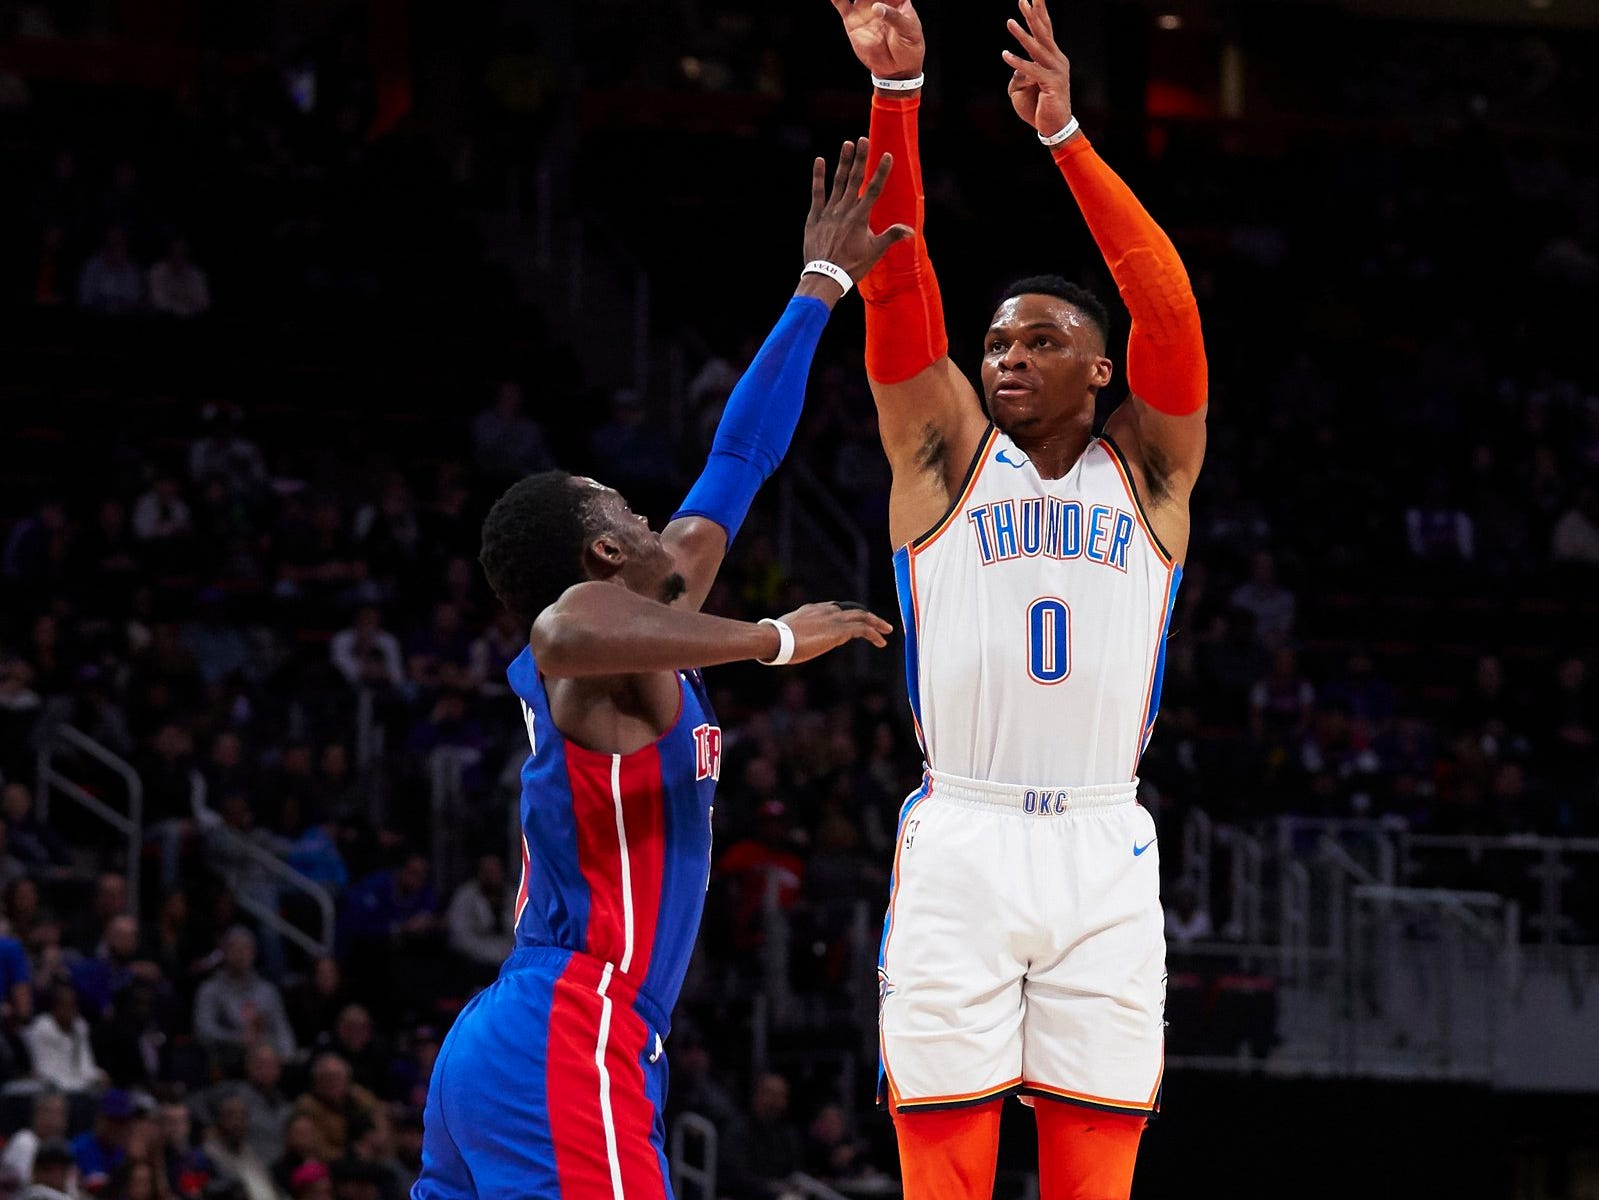 Oklahoma City Thunder guard Russell Westbrook (0) shoots over Detroit Pistons guard Reggie Jackson (1) in the first half at Little Caesars Arena.